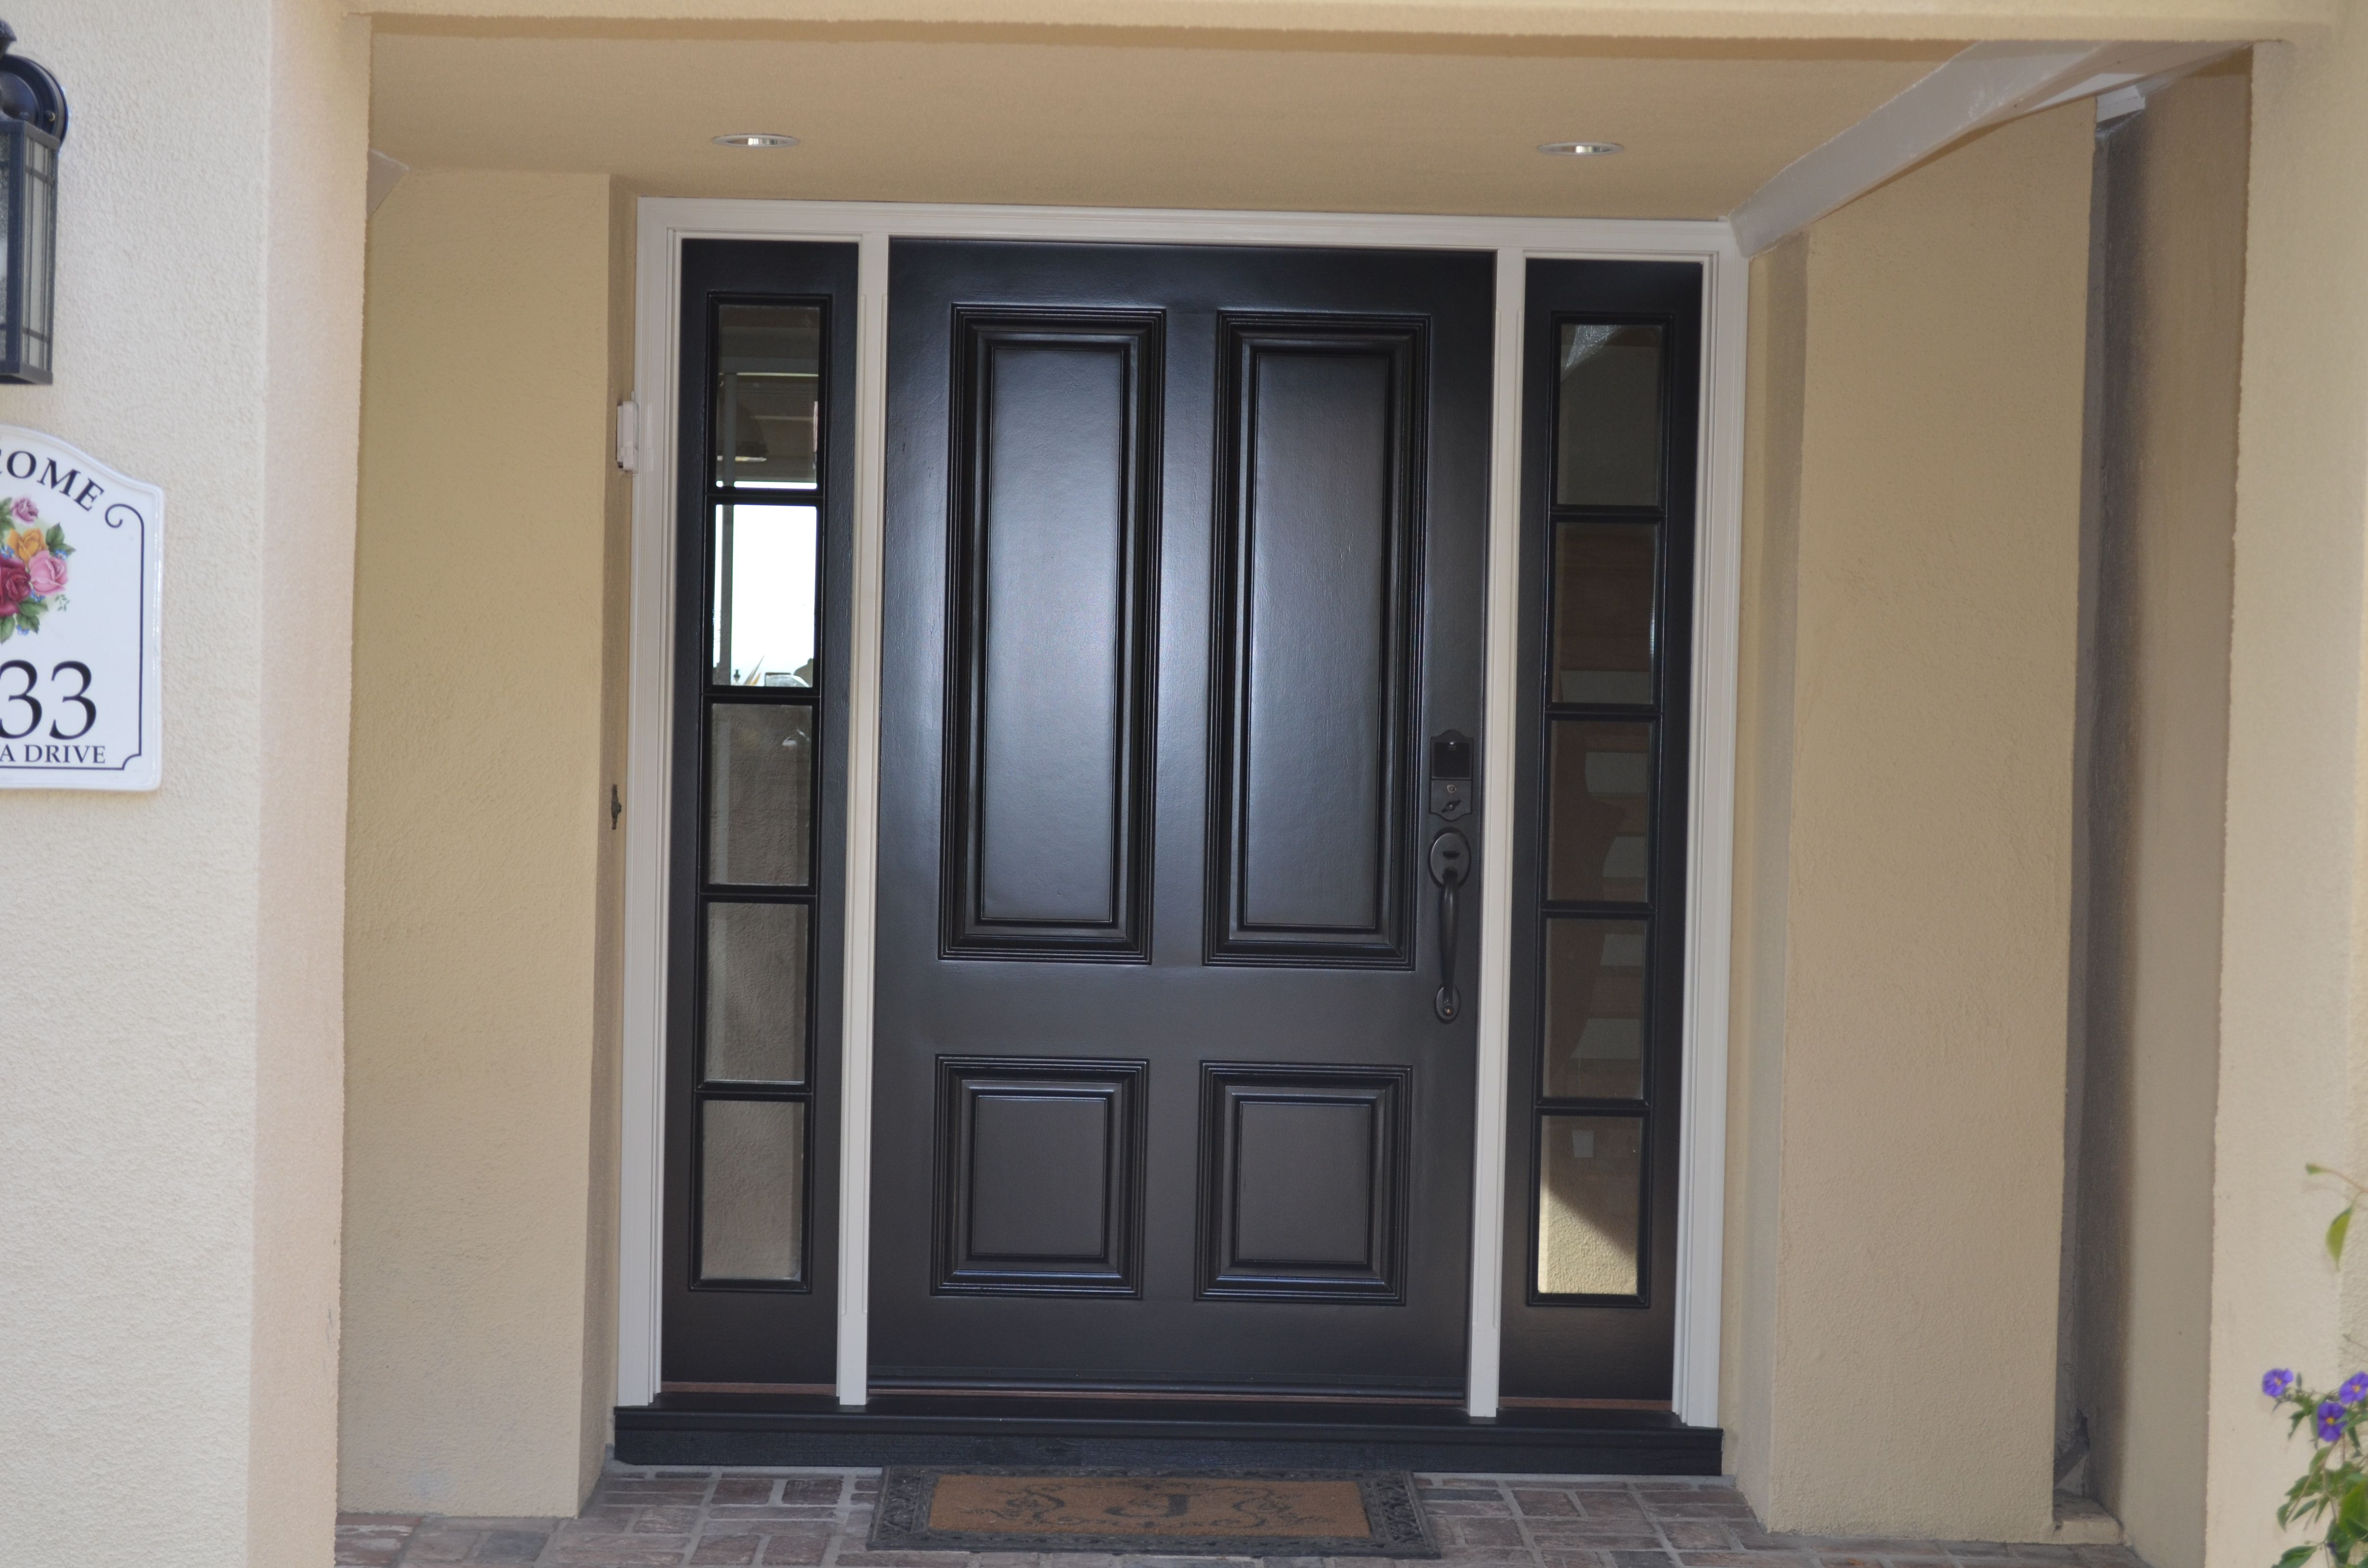 4 Panel No Glass And Side Lights With Grids Contemporary Entry Doors Entry Doors Entry Doors With Glass